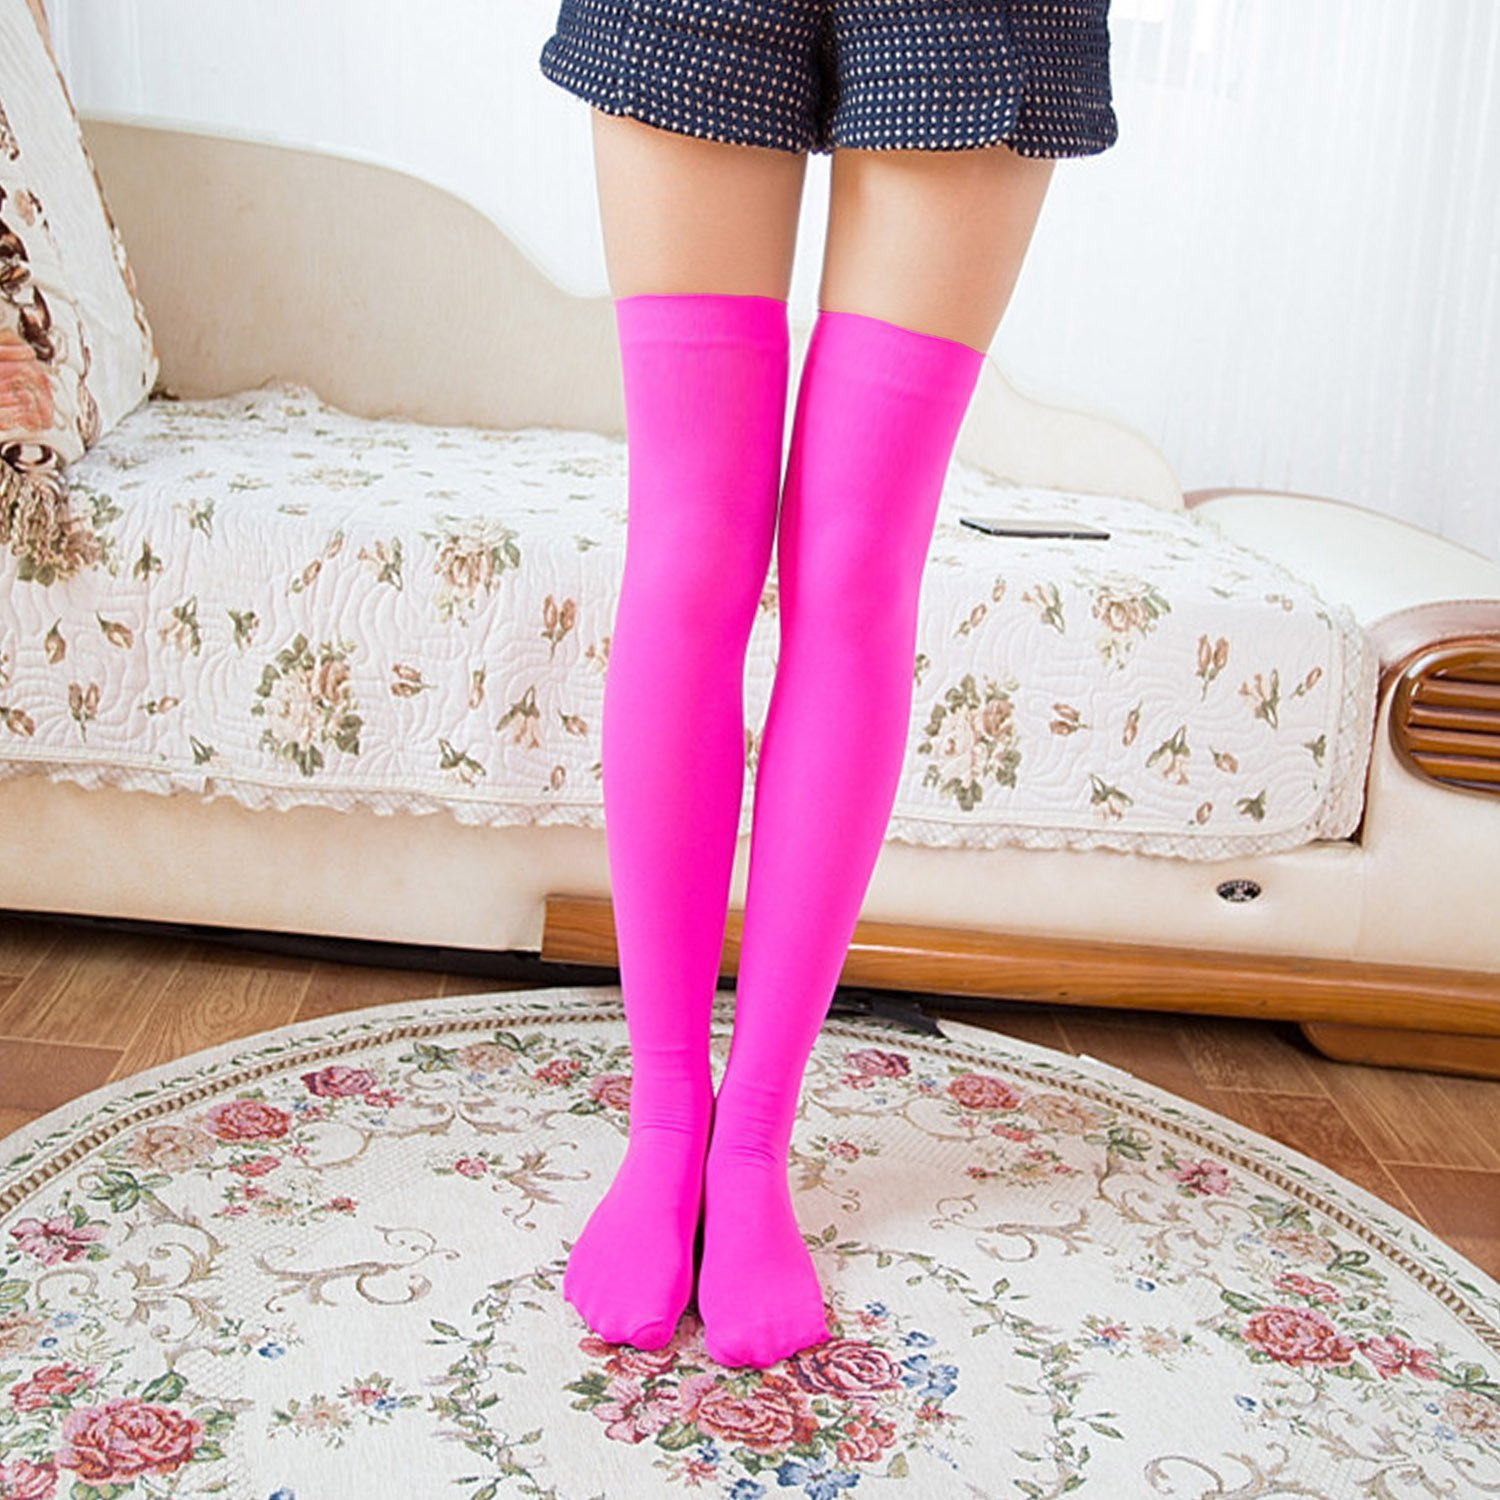 5f34d5b77f128 3 Pairs Women's Long Top Thigh High Stockings Over knee Socks, One Size,  Purple+hot Pink+kelly Green at Amazon Women's Clothing store: